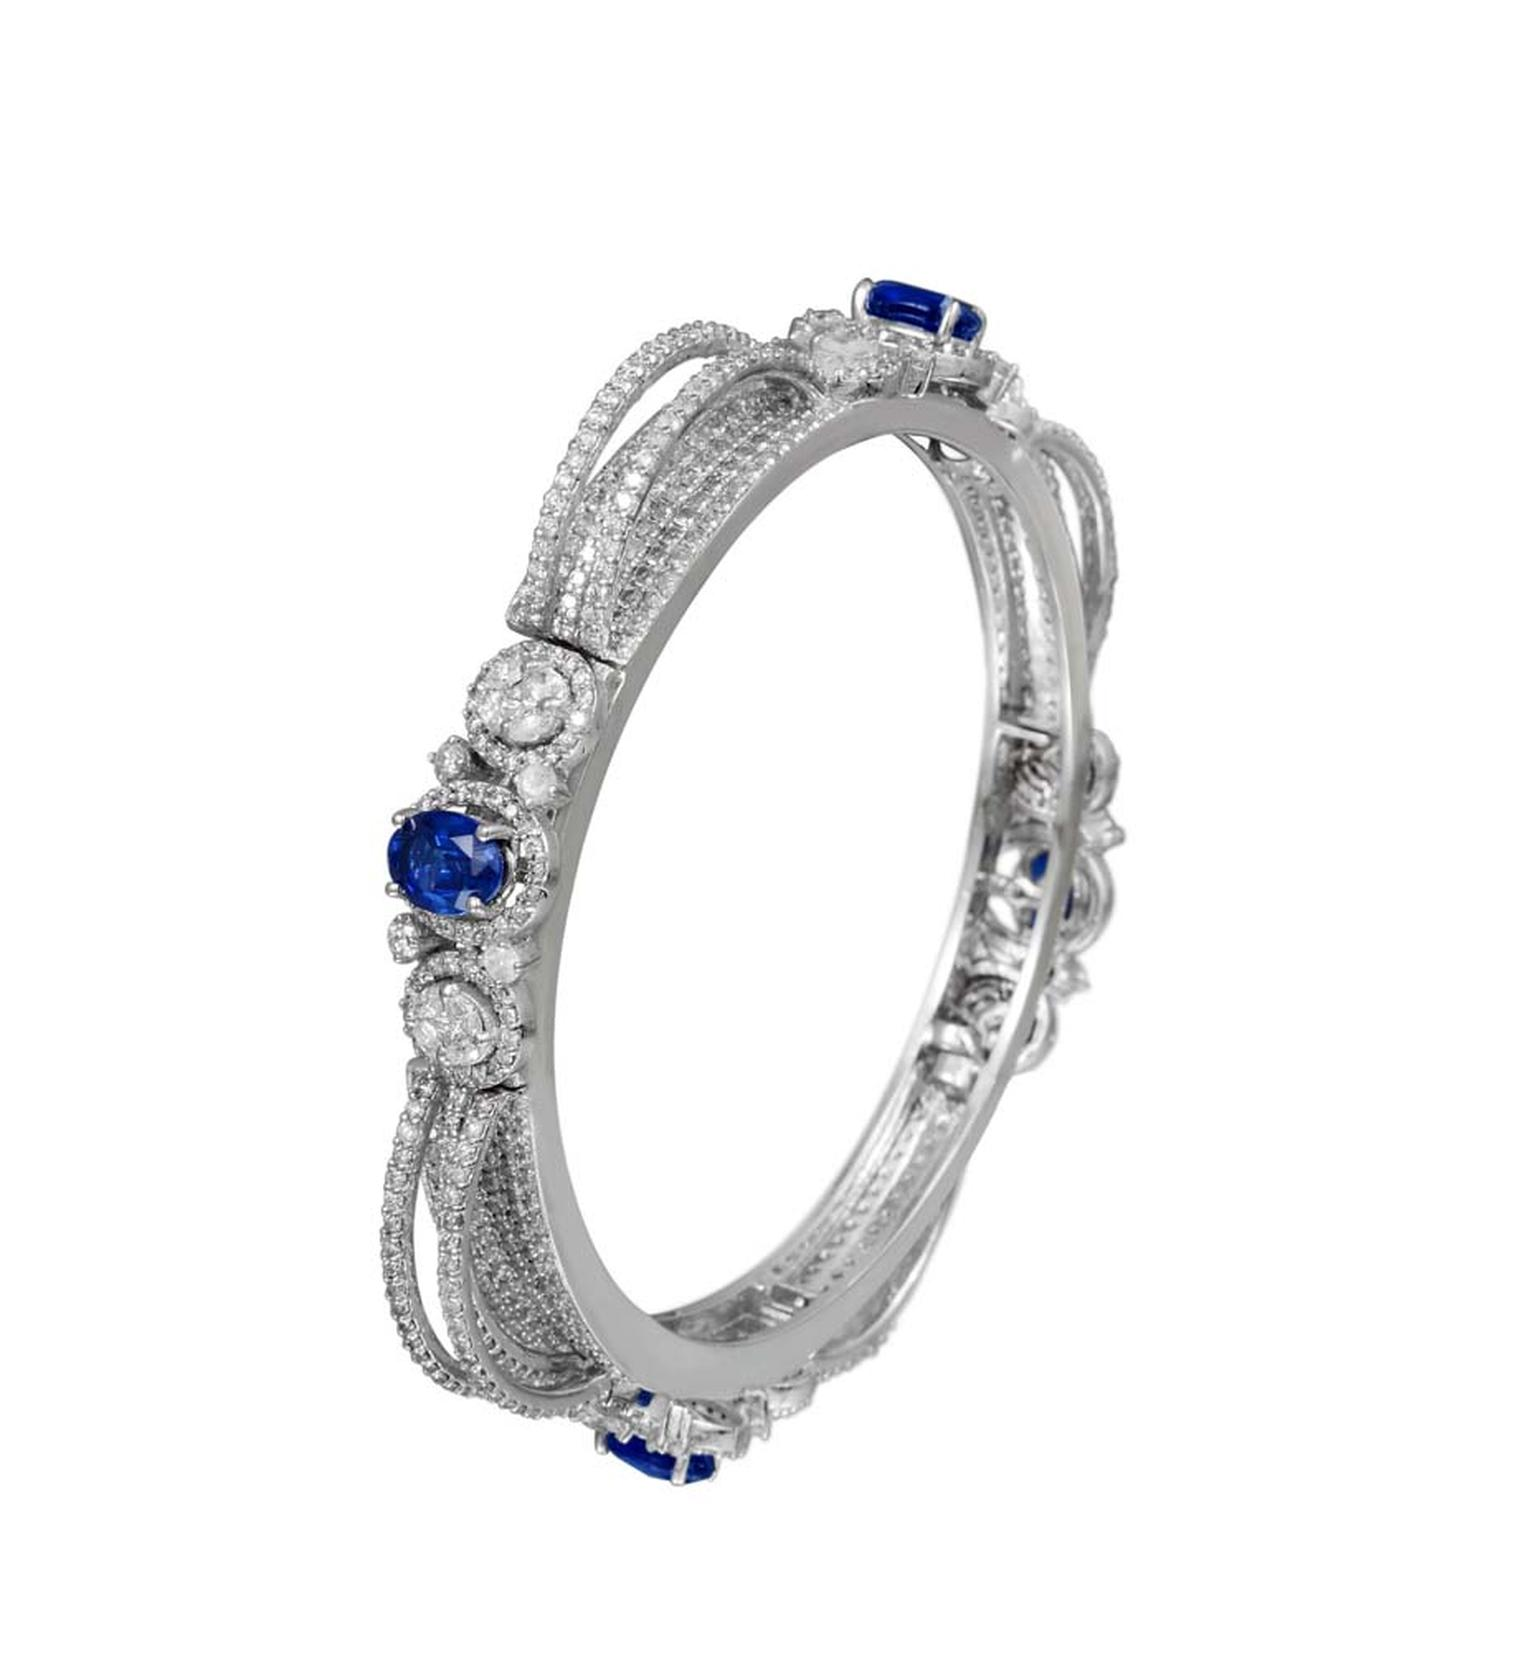 Varuna D Jani Vow collection bangle featuring diamonds and sapphires